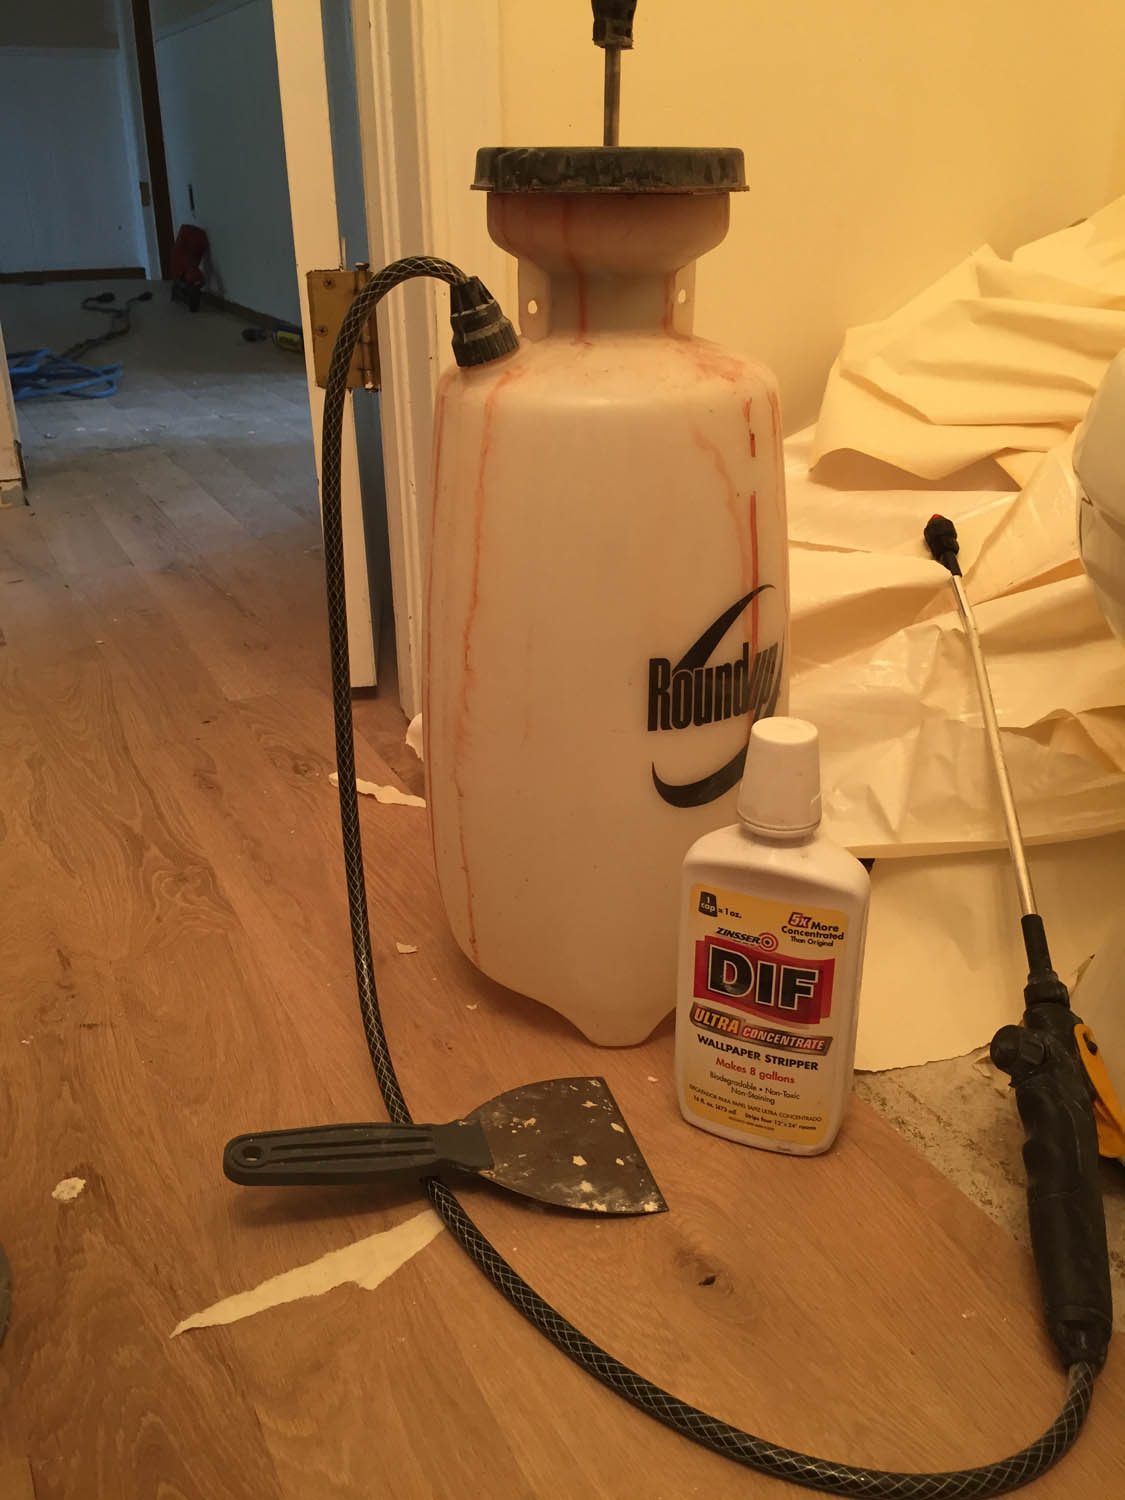 wallpaper removal tools and supplies